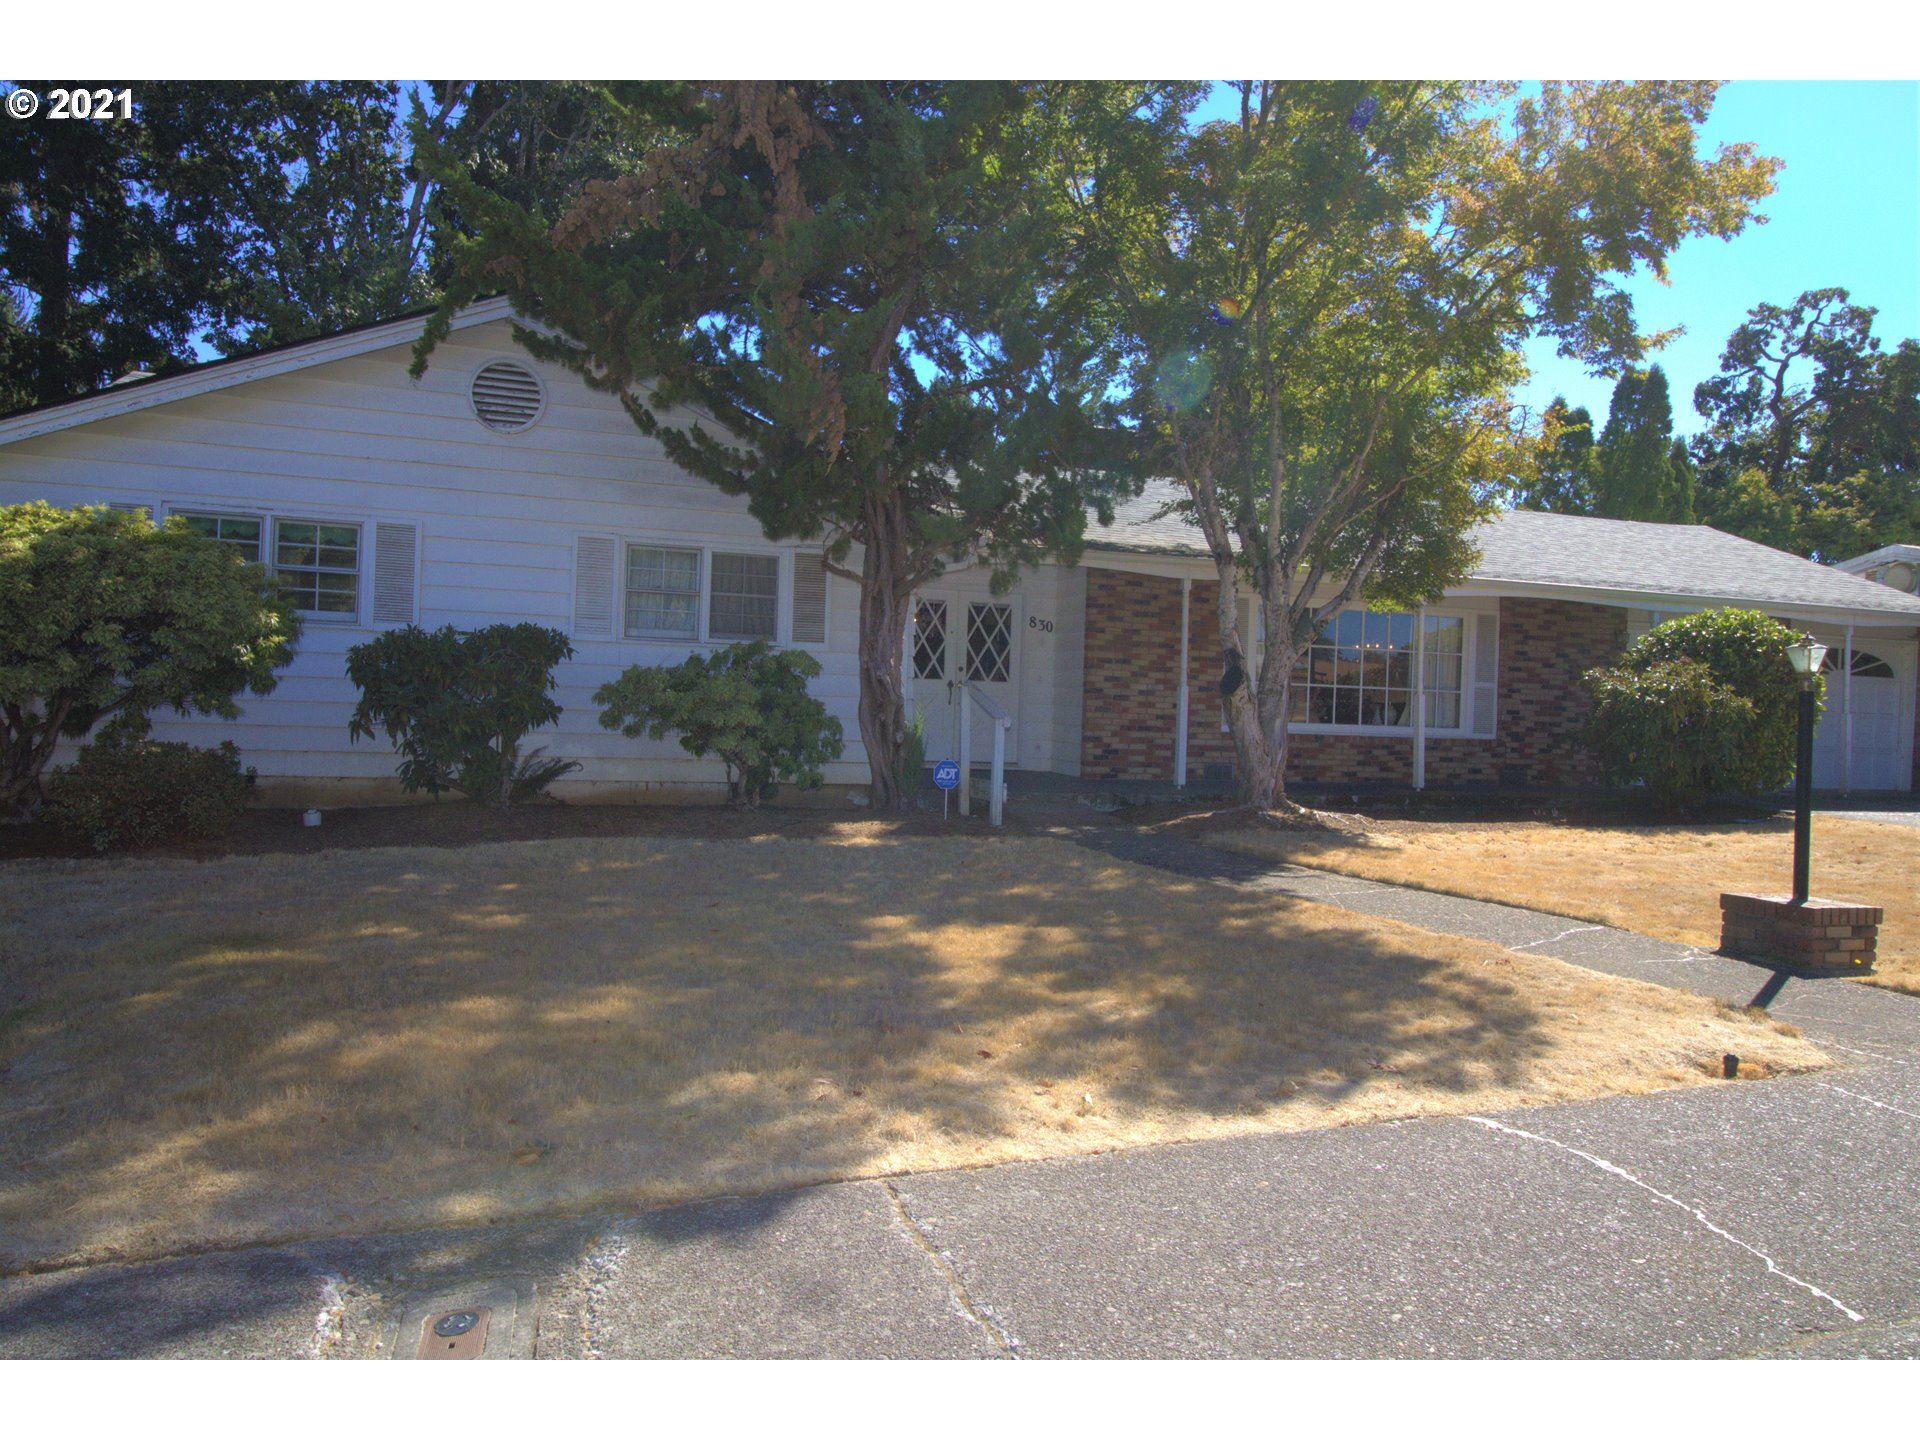 Photo of 830 CLARMOUNT ST NW, Salem, OR 97304 (MLS # 21542520)